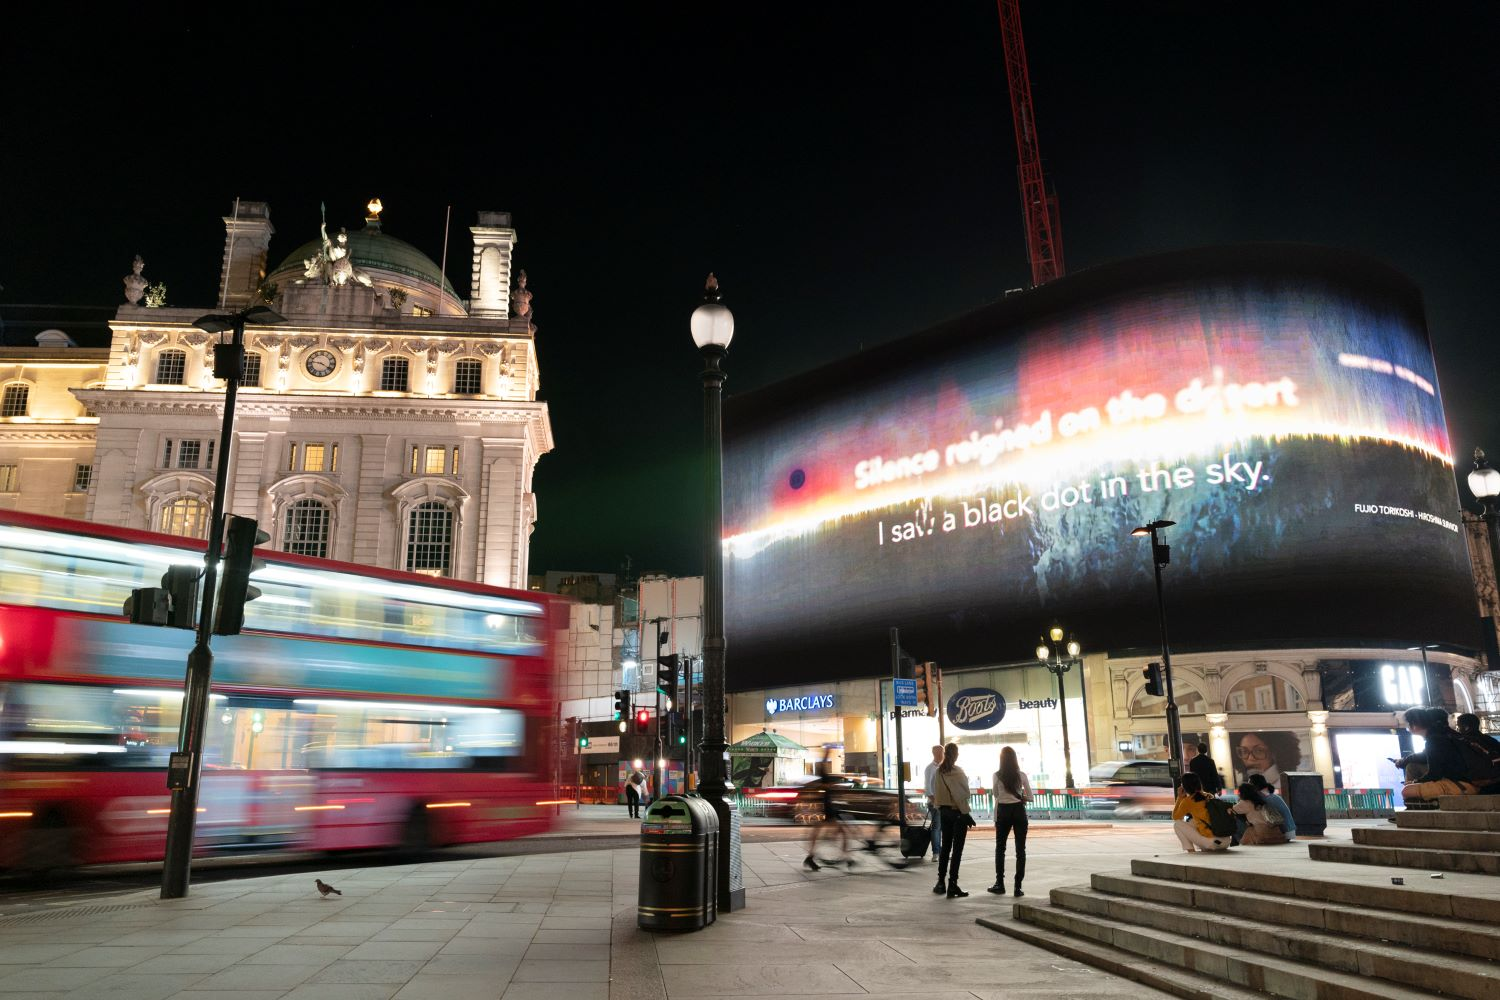 The short film I Saw the World End is shown on the screens at Piccadilly Circus in London